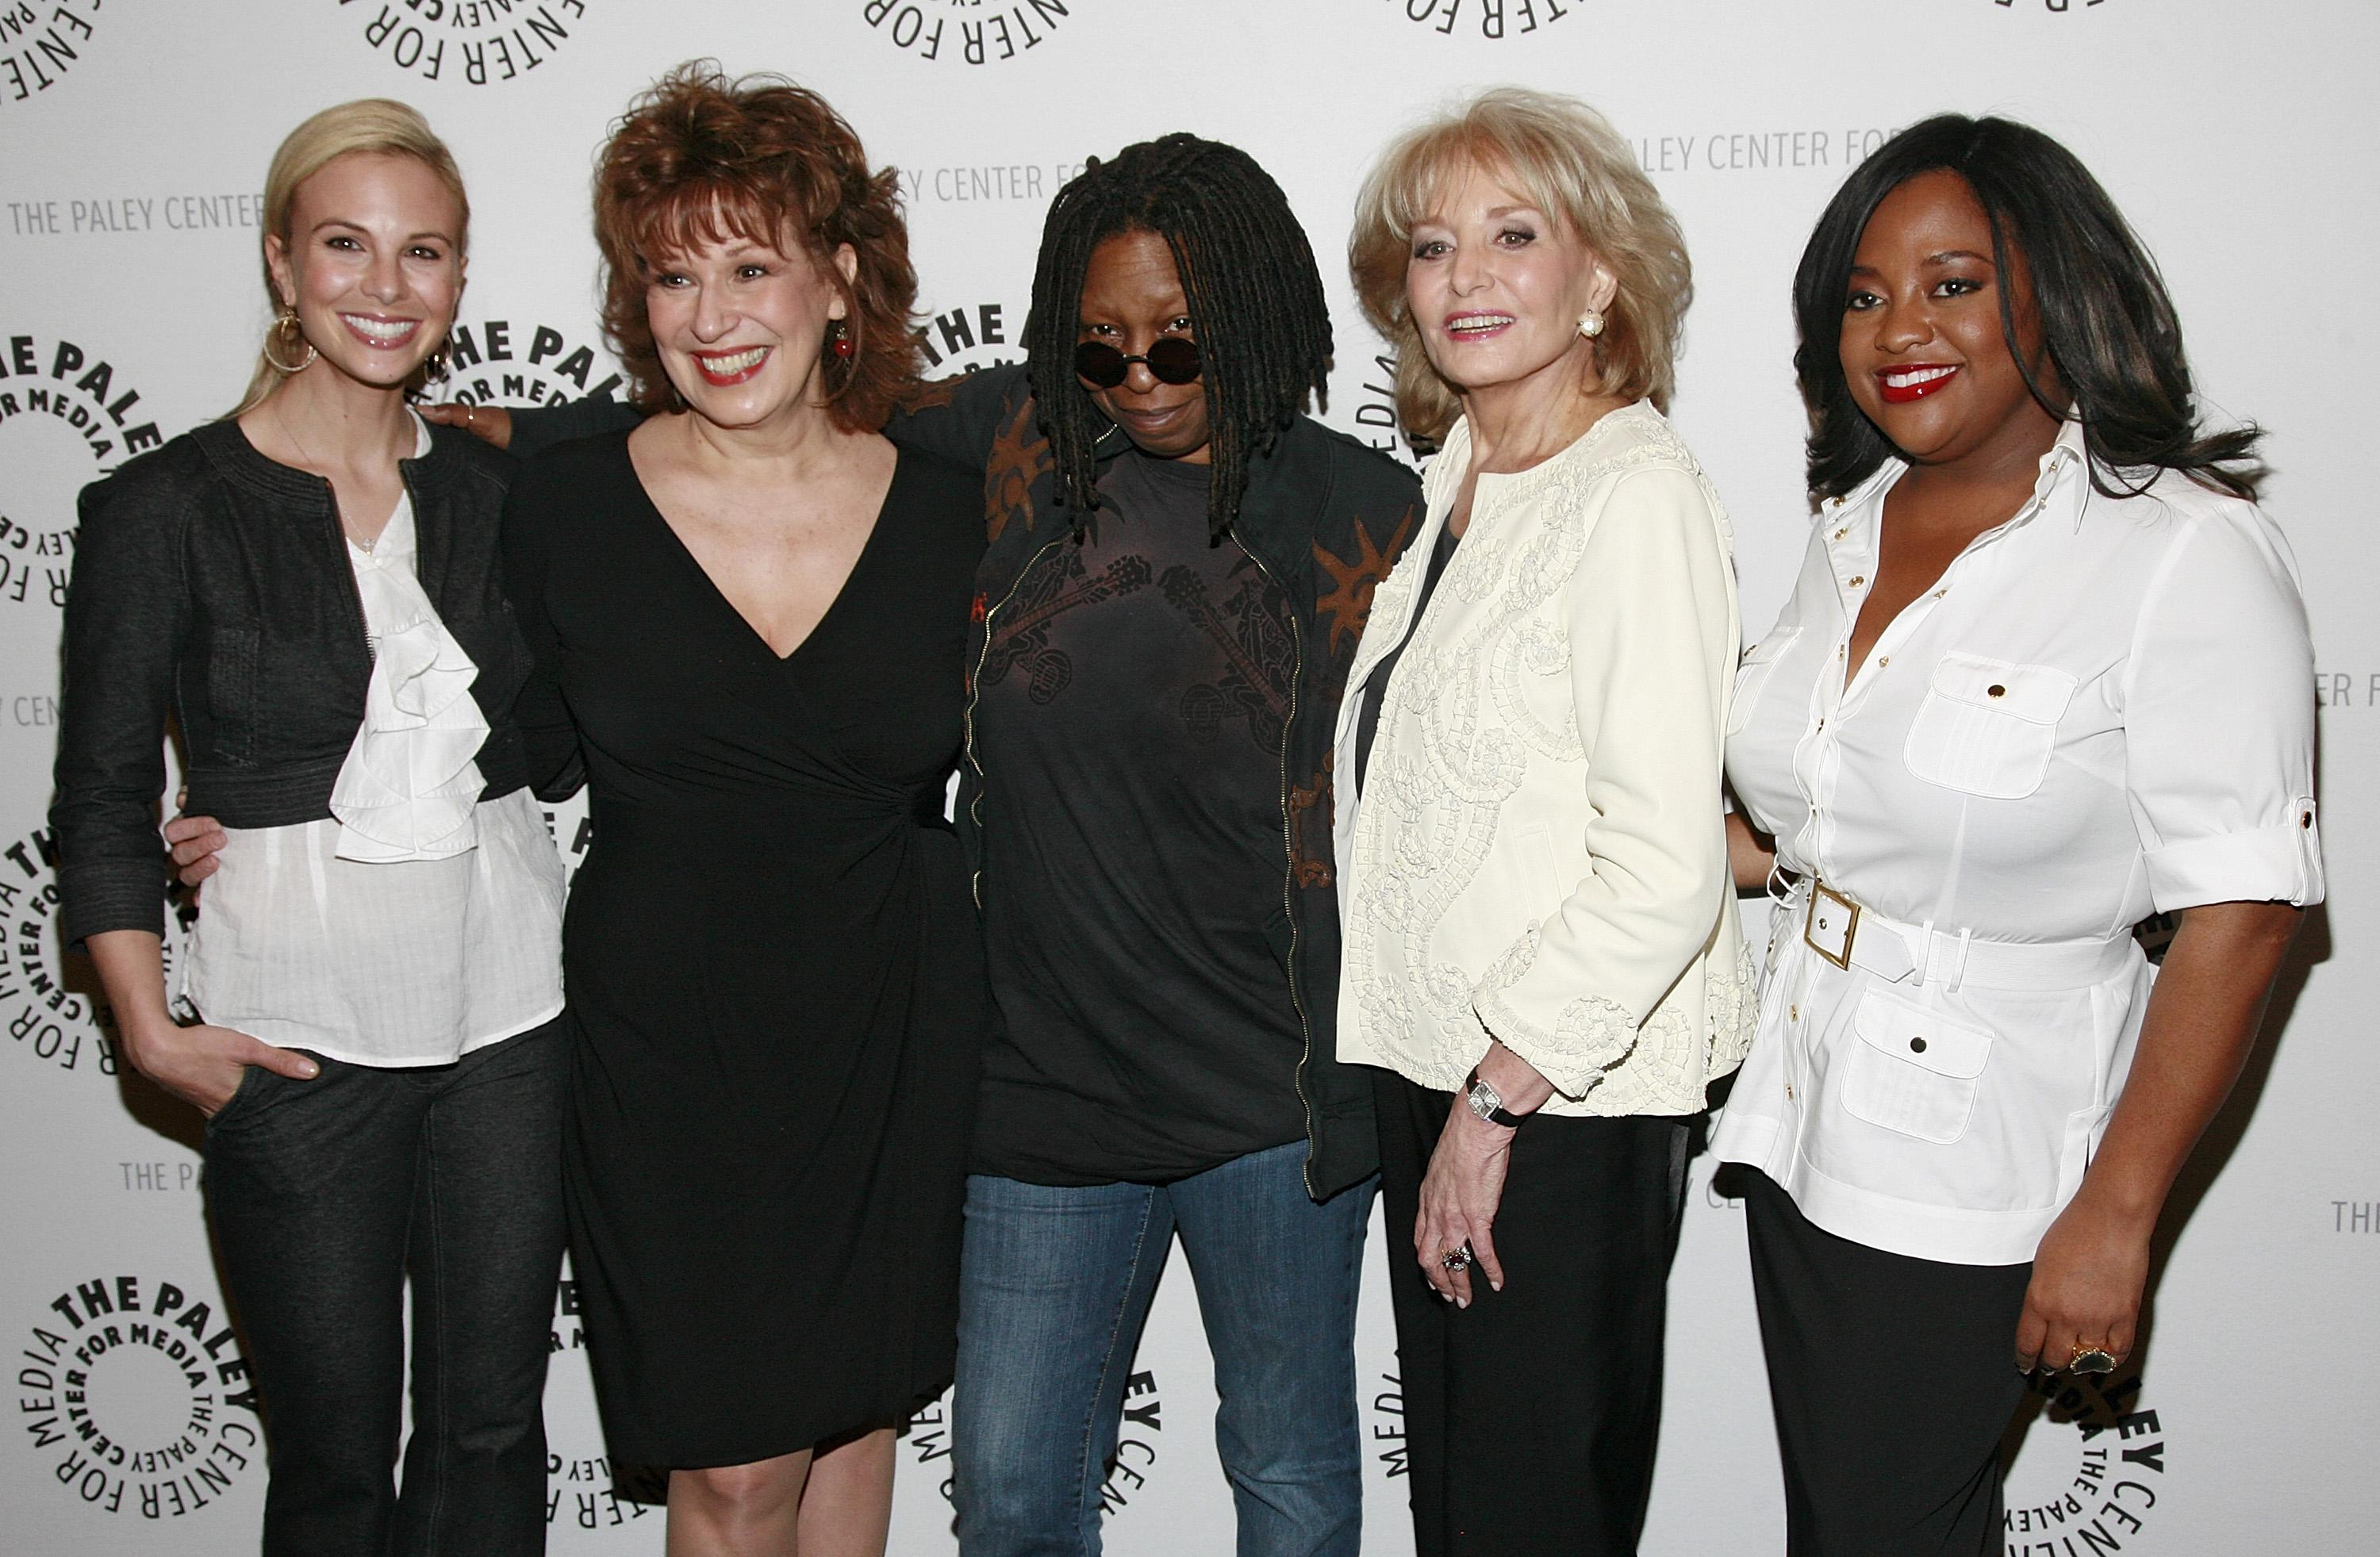 An Evening with the Hosts of 'The View'